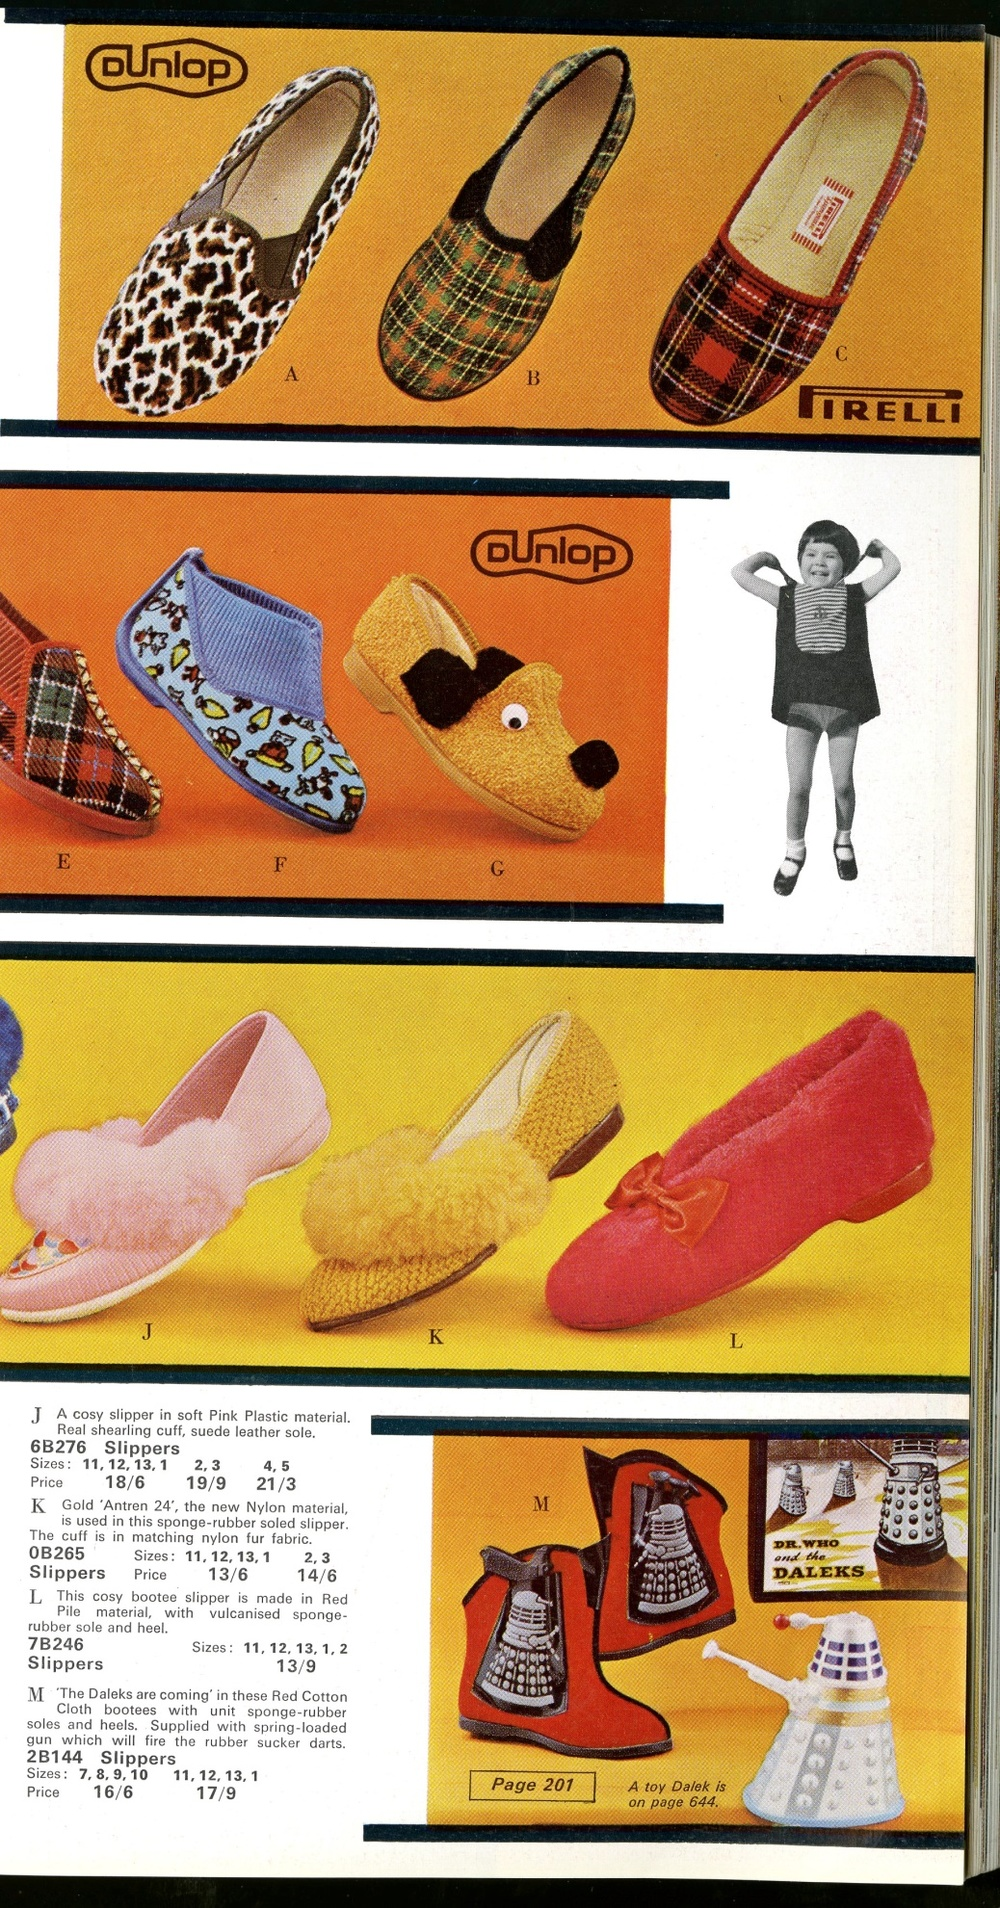 Ad. for second version of Furness Footwear Dalek slippers from 1965 Grattans catalogue (shown with original box and sucker gun).